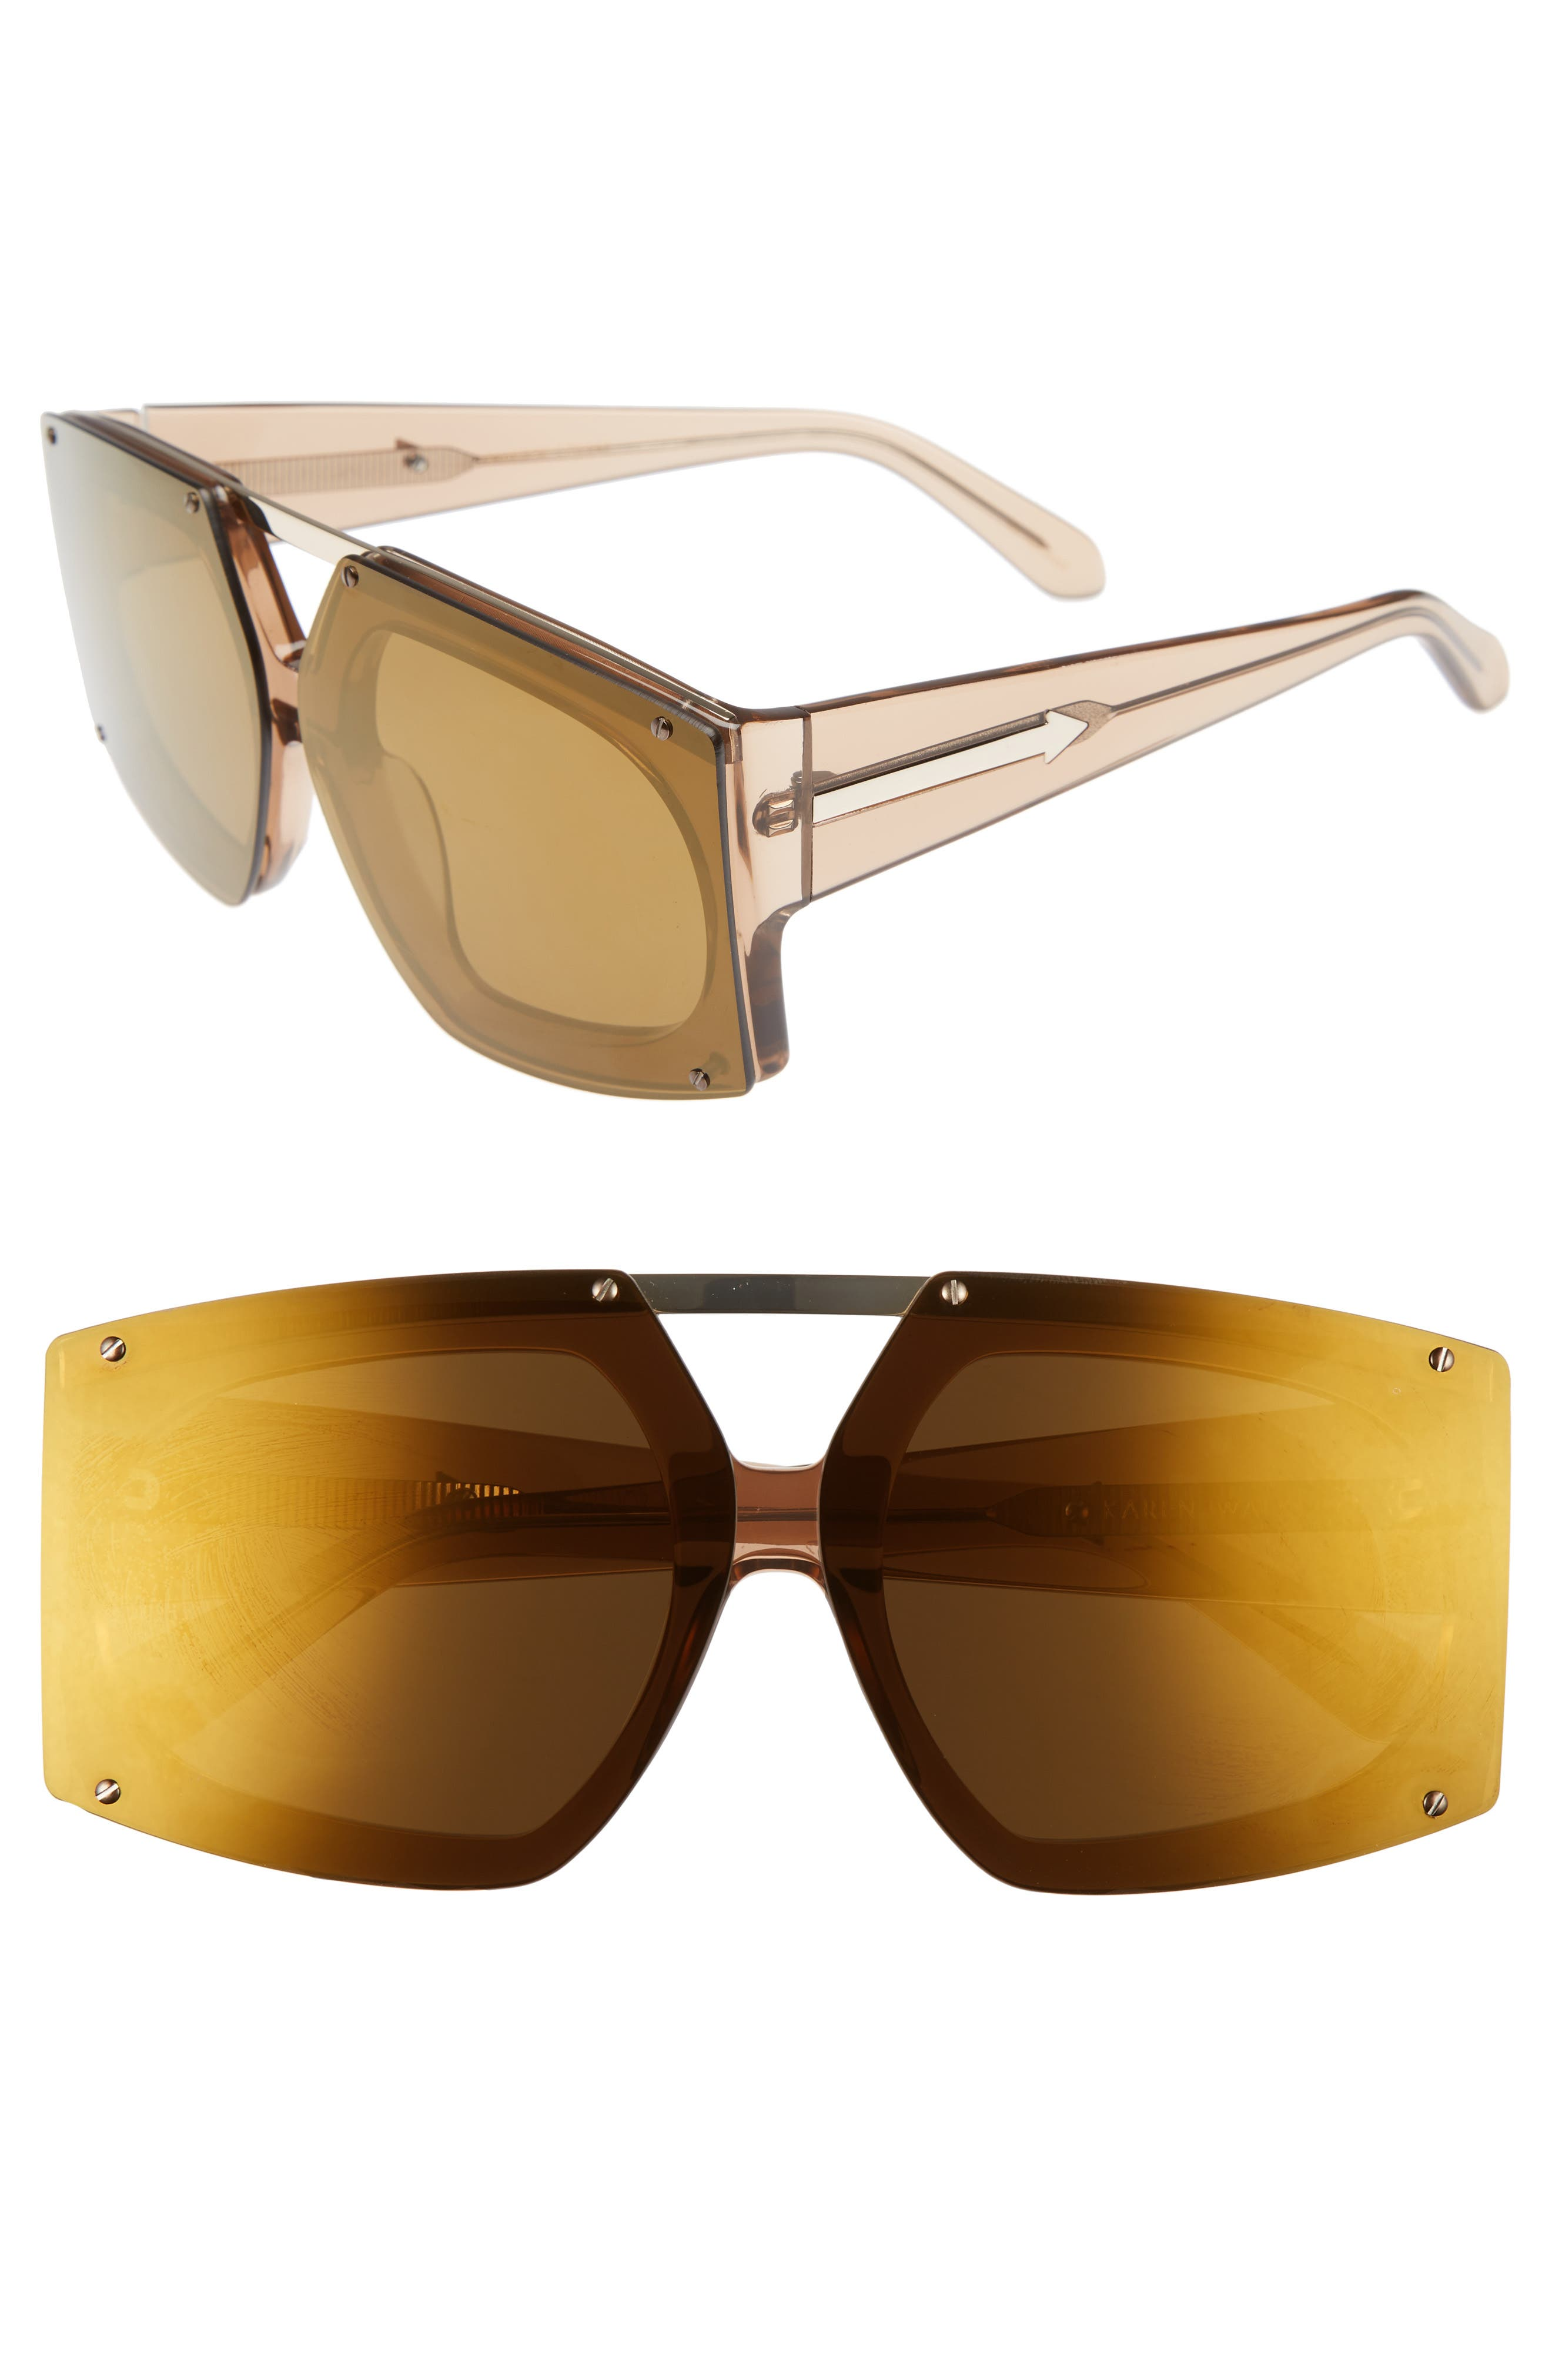 70mm Mirrored Oversized Sunglasses,                             Main thumbnail 2, color,